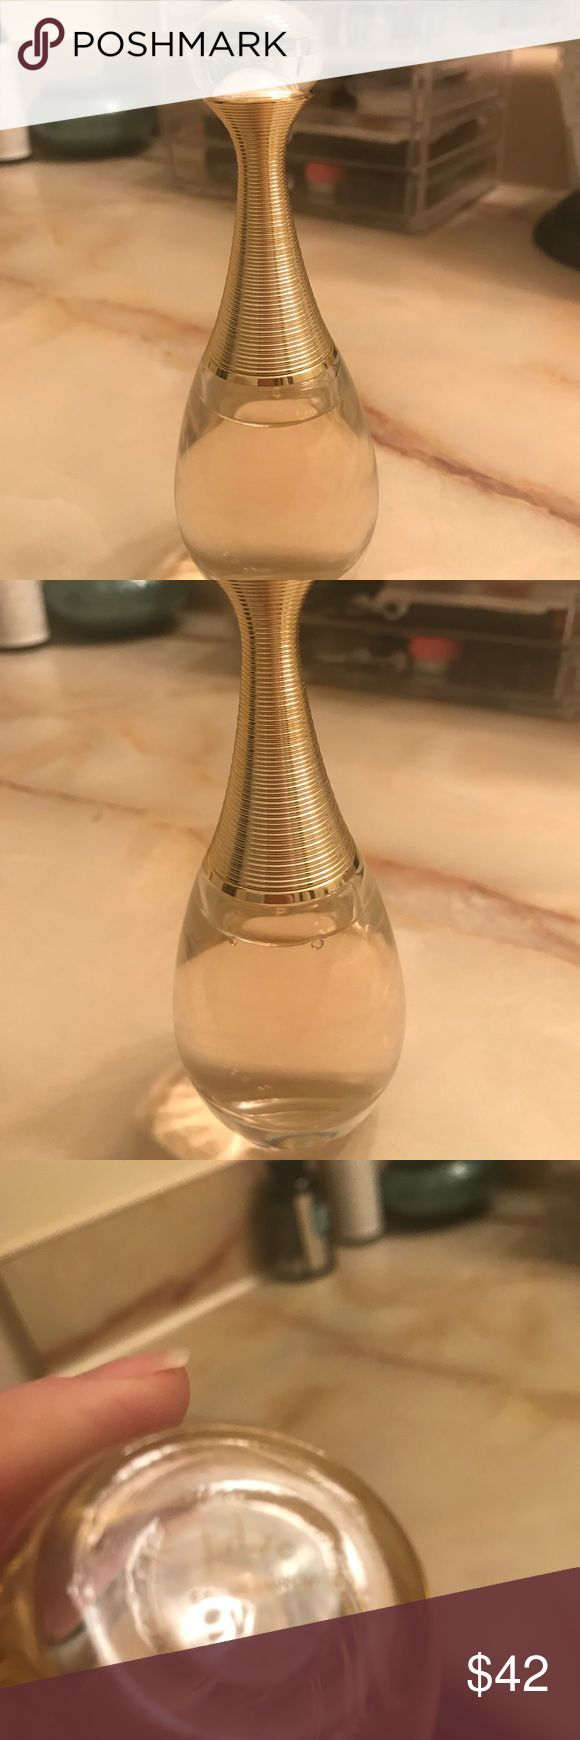 Jadore by Dior - Make reasonable offer! Jadore by Christian Dior Parfume - 1.7 oz This has only been sprayed once for 1st time use. It has been sitting on my vanity for a while now and I do not reach for it. It does not go well with my chemistry. Perfect for a Christmas gift or stocking stuffer. Sorry no box. I will accept all reasonable offers. Thank you! 😊 ❤️ Christian Dior Accessories